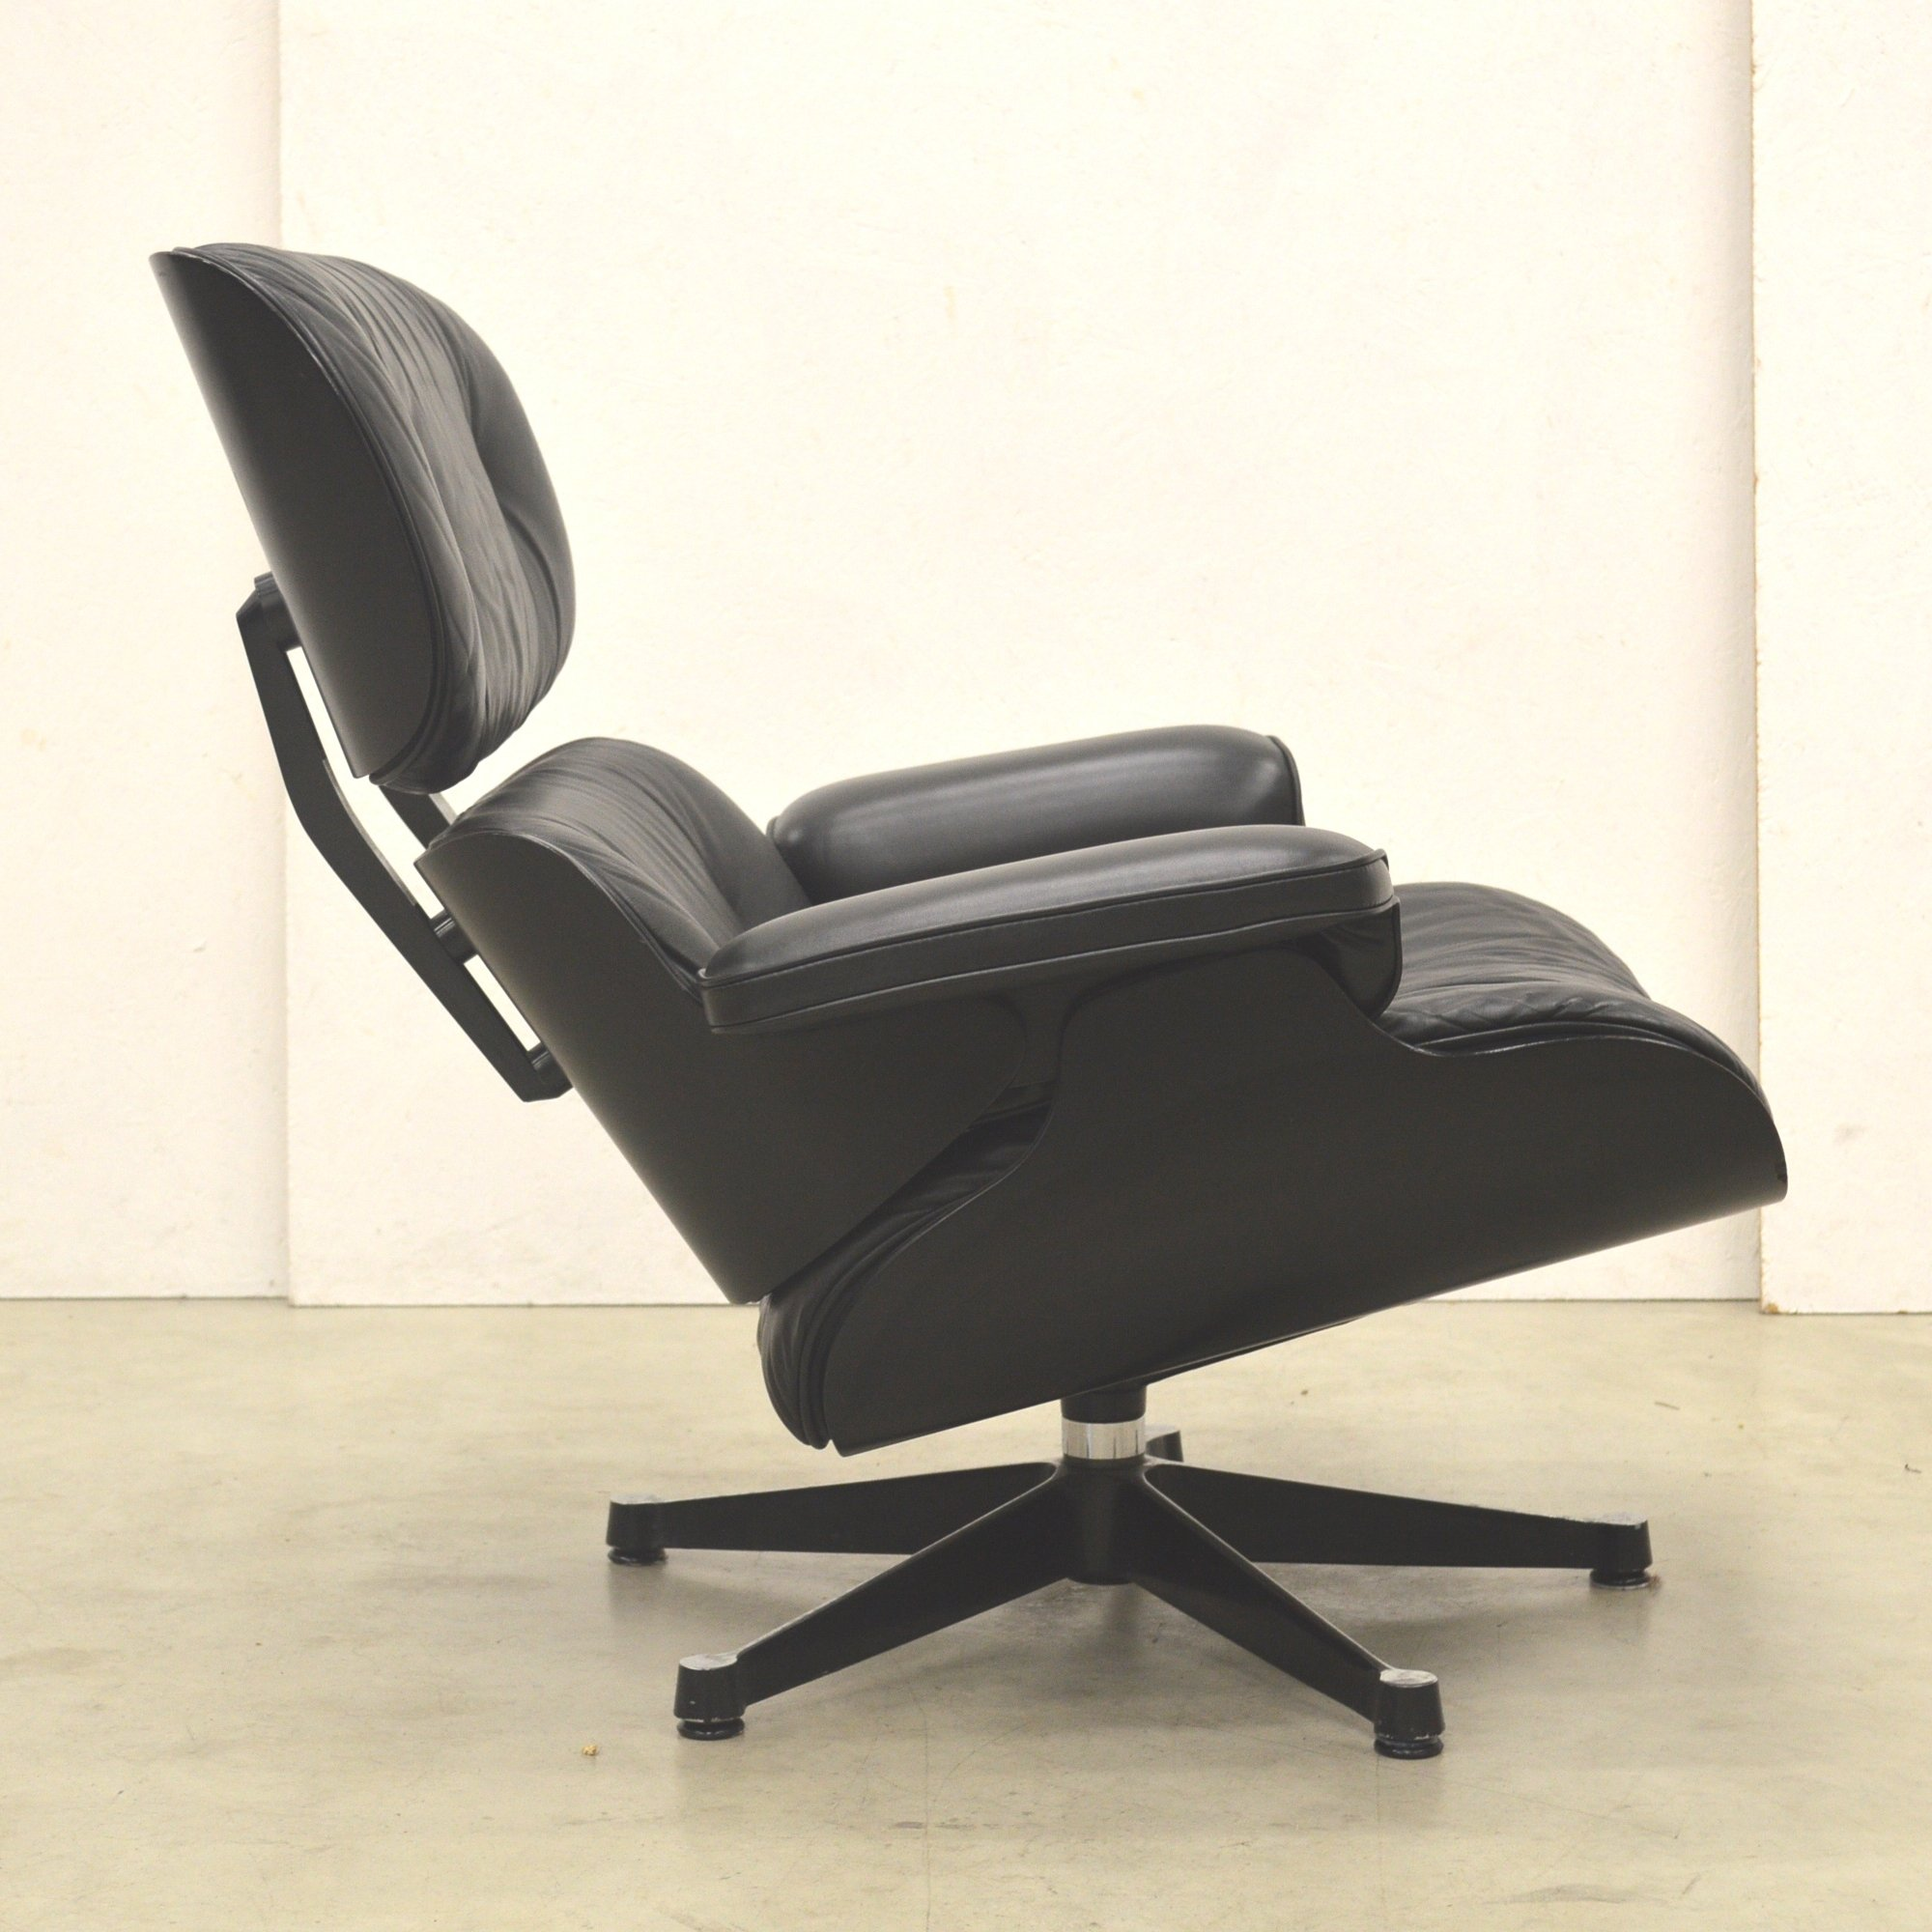 black edition lounge chair by charles ray eames for vitra 1980s 69934. Black Bedroom Furniture Sets. Home Design Ideas